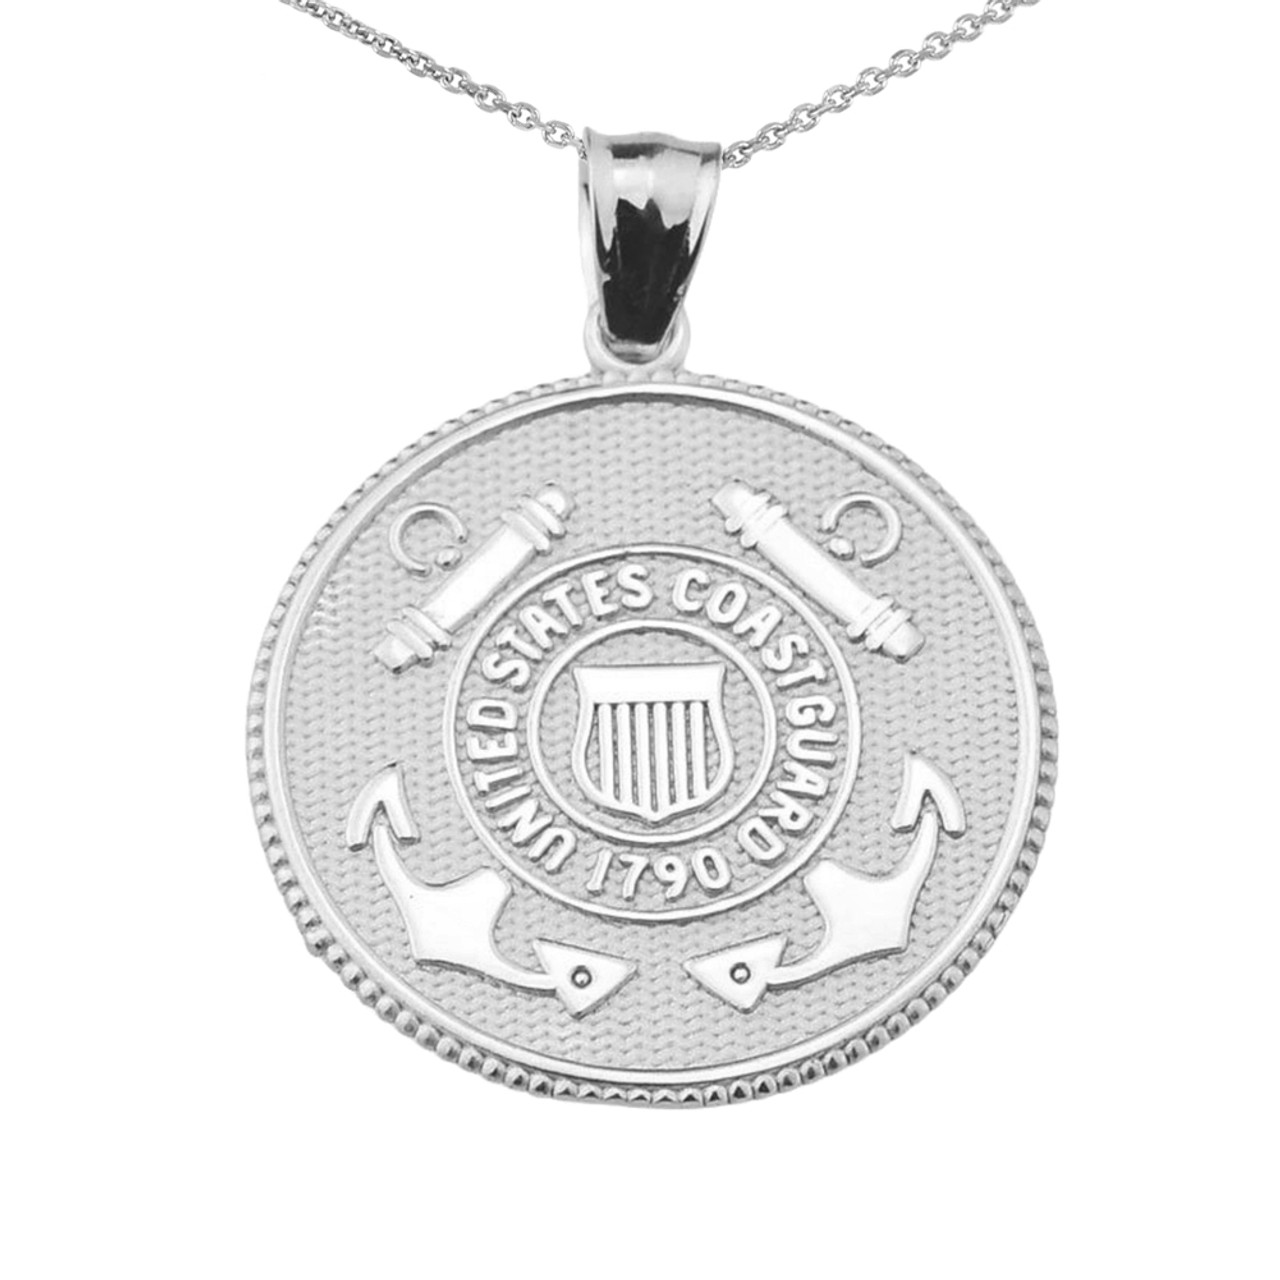 Us coast guard solid white gold disk pendant necklace us coast guard solid white gold coin pendant necklace aloadofball Image collections